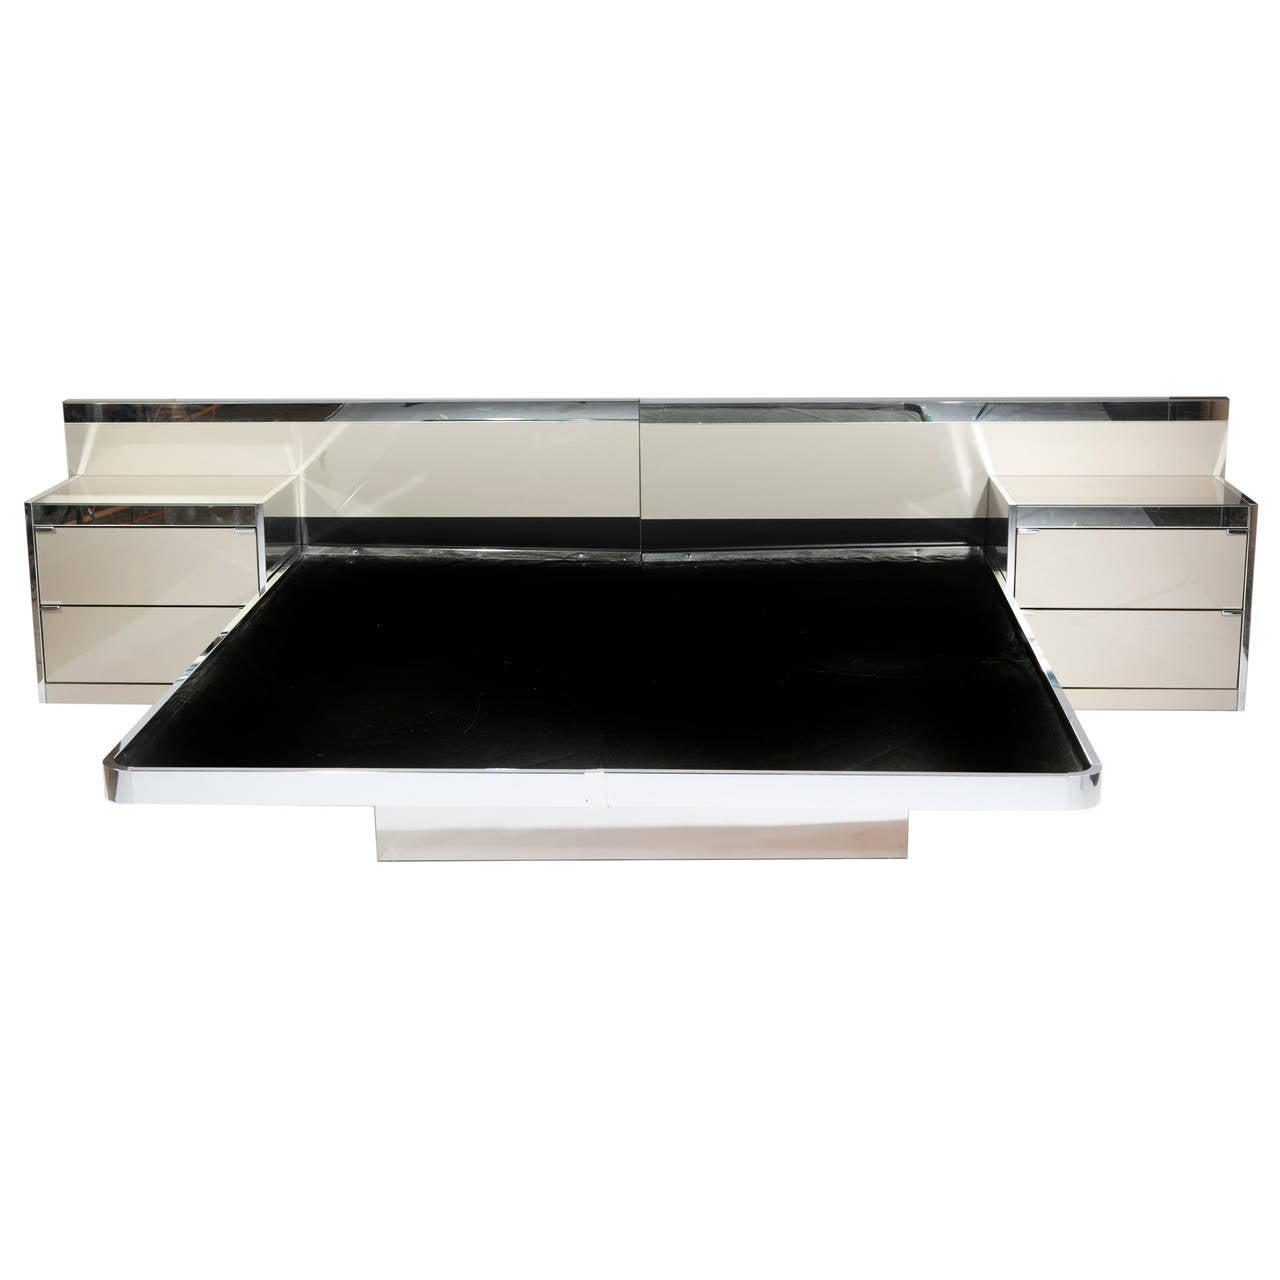 Illuminated Ello Platform Bed With Integrated Nightstands